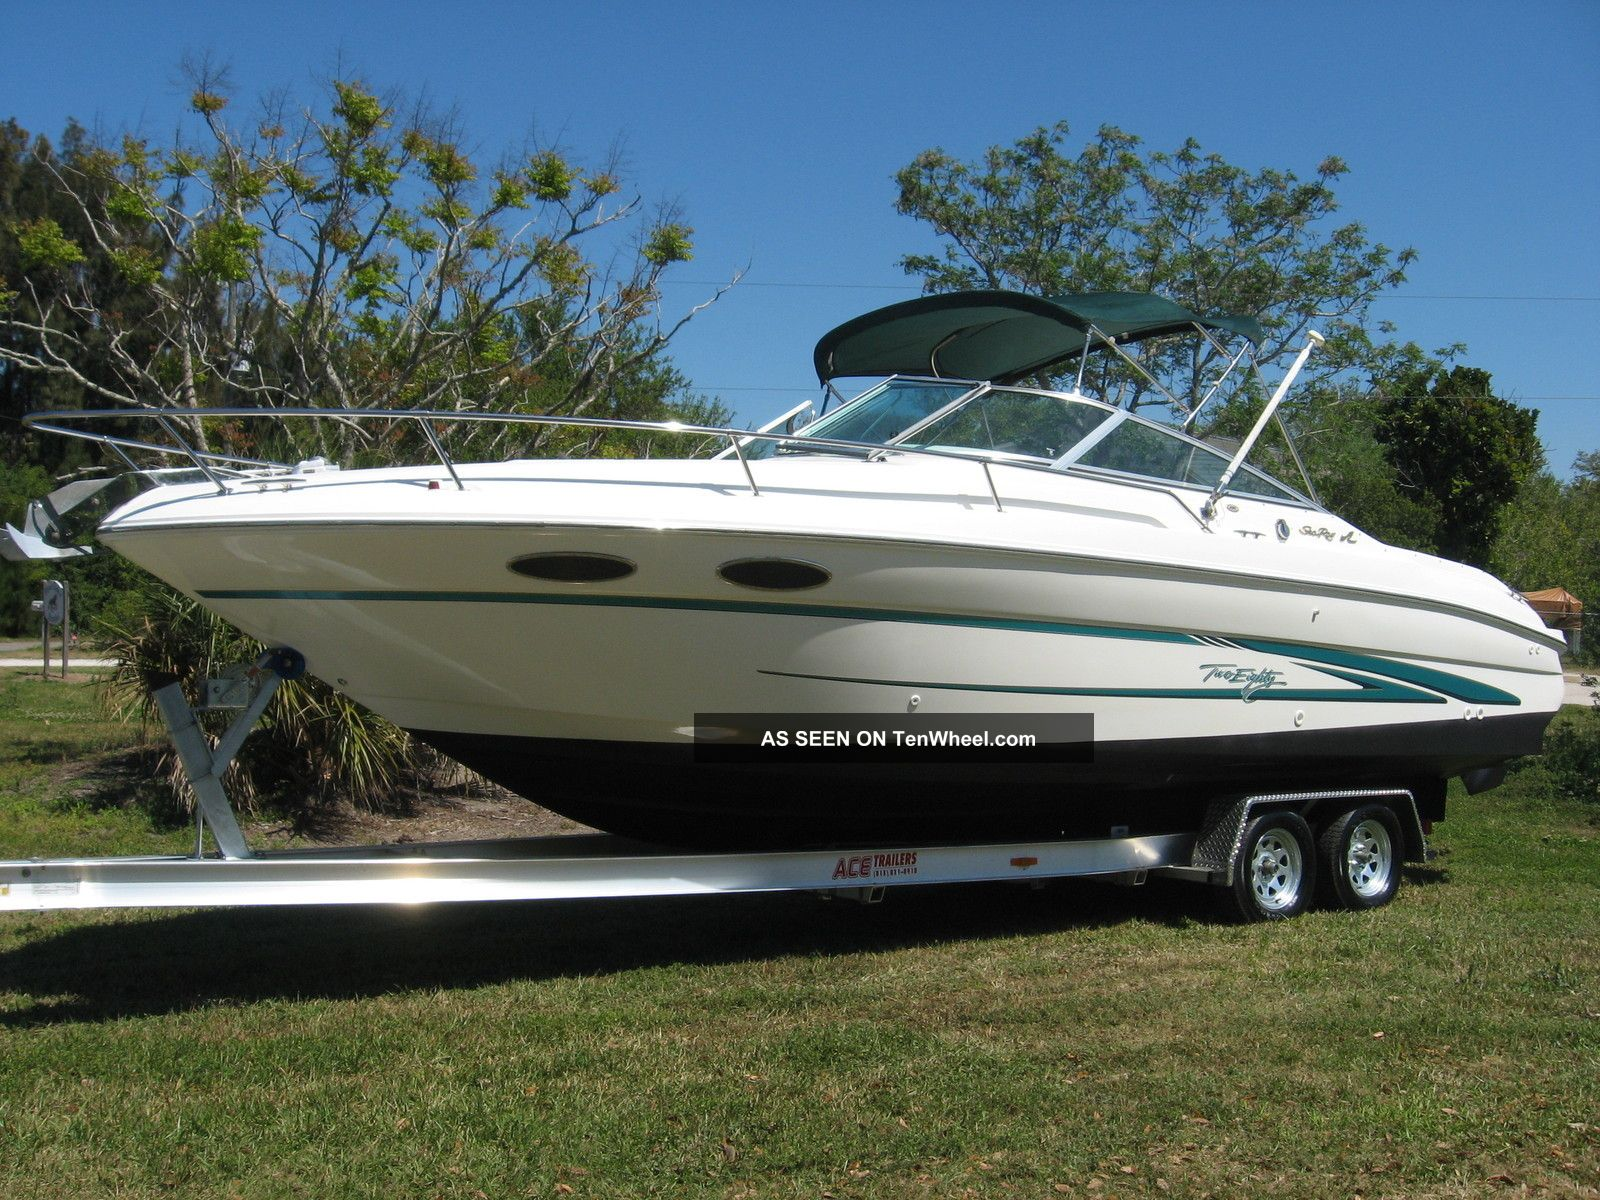 1999 Sea Ray 280 Ss Cuddies photo